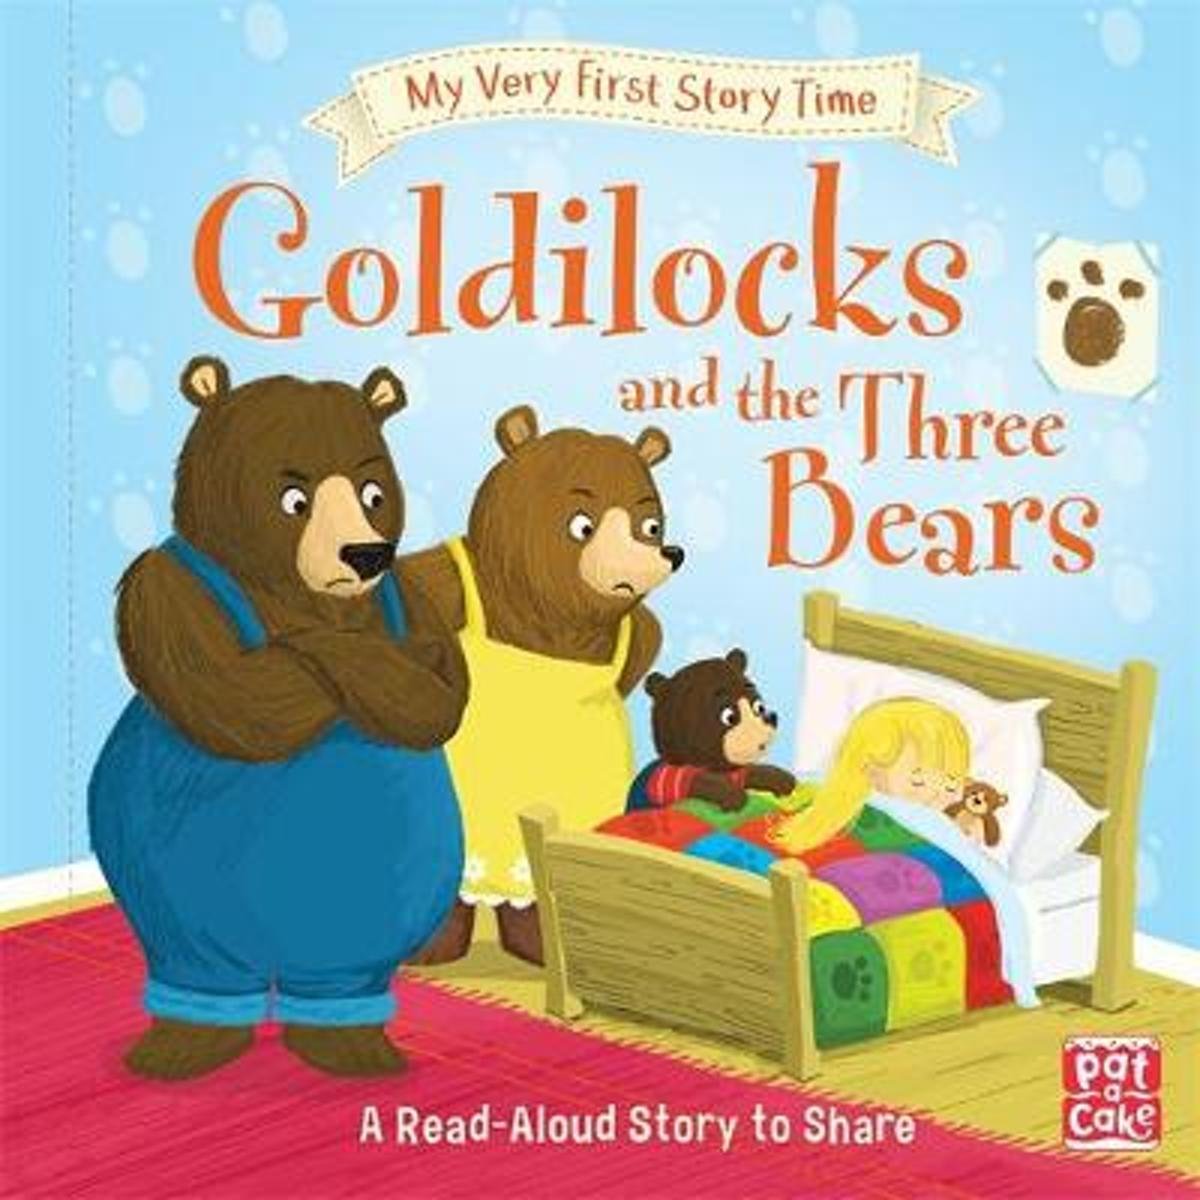 My Very First Story Time